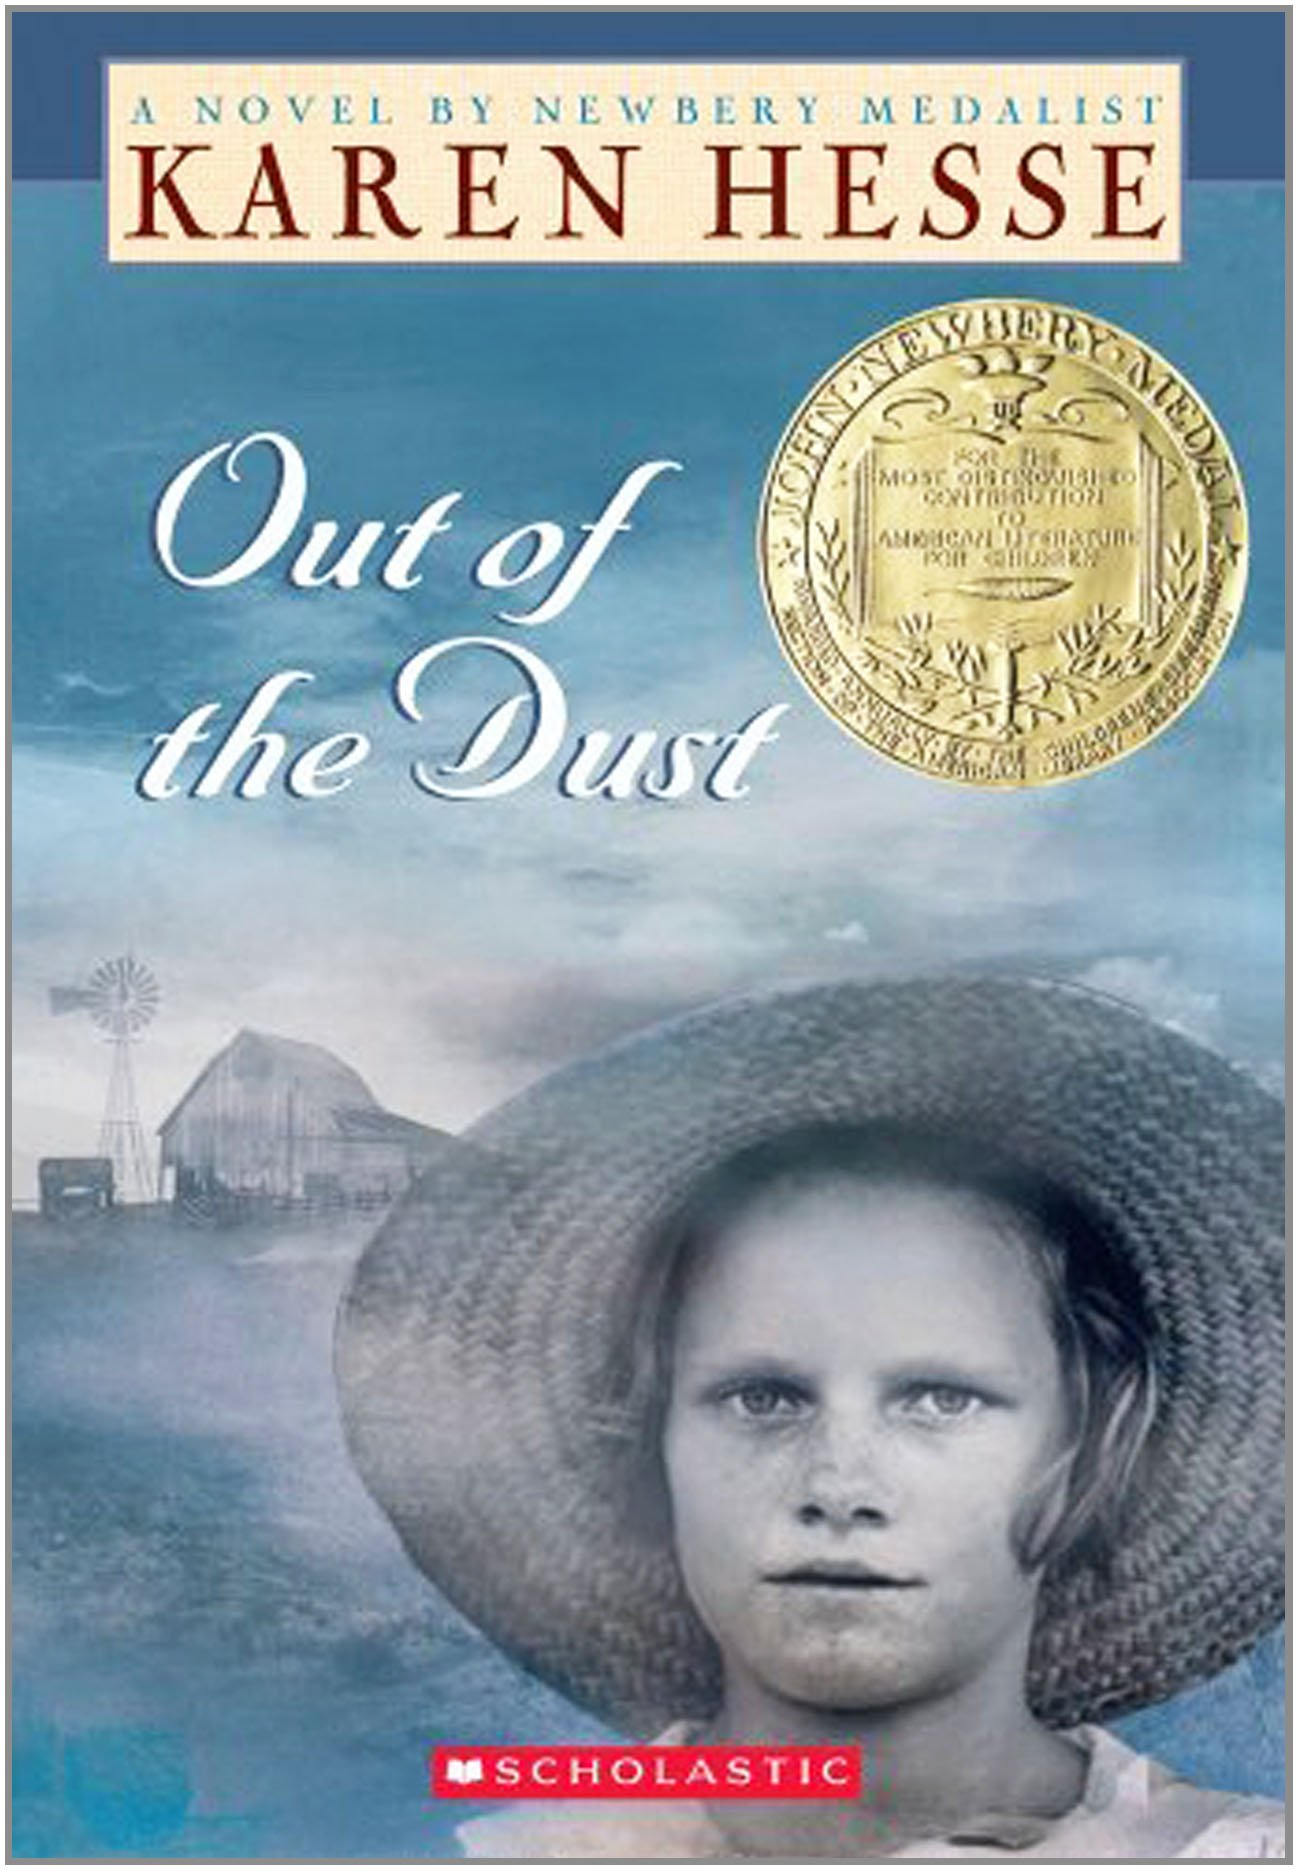 Out of the Dust by Karen Hesse